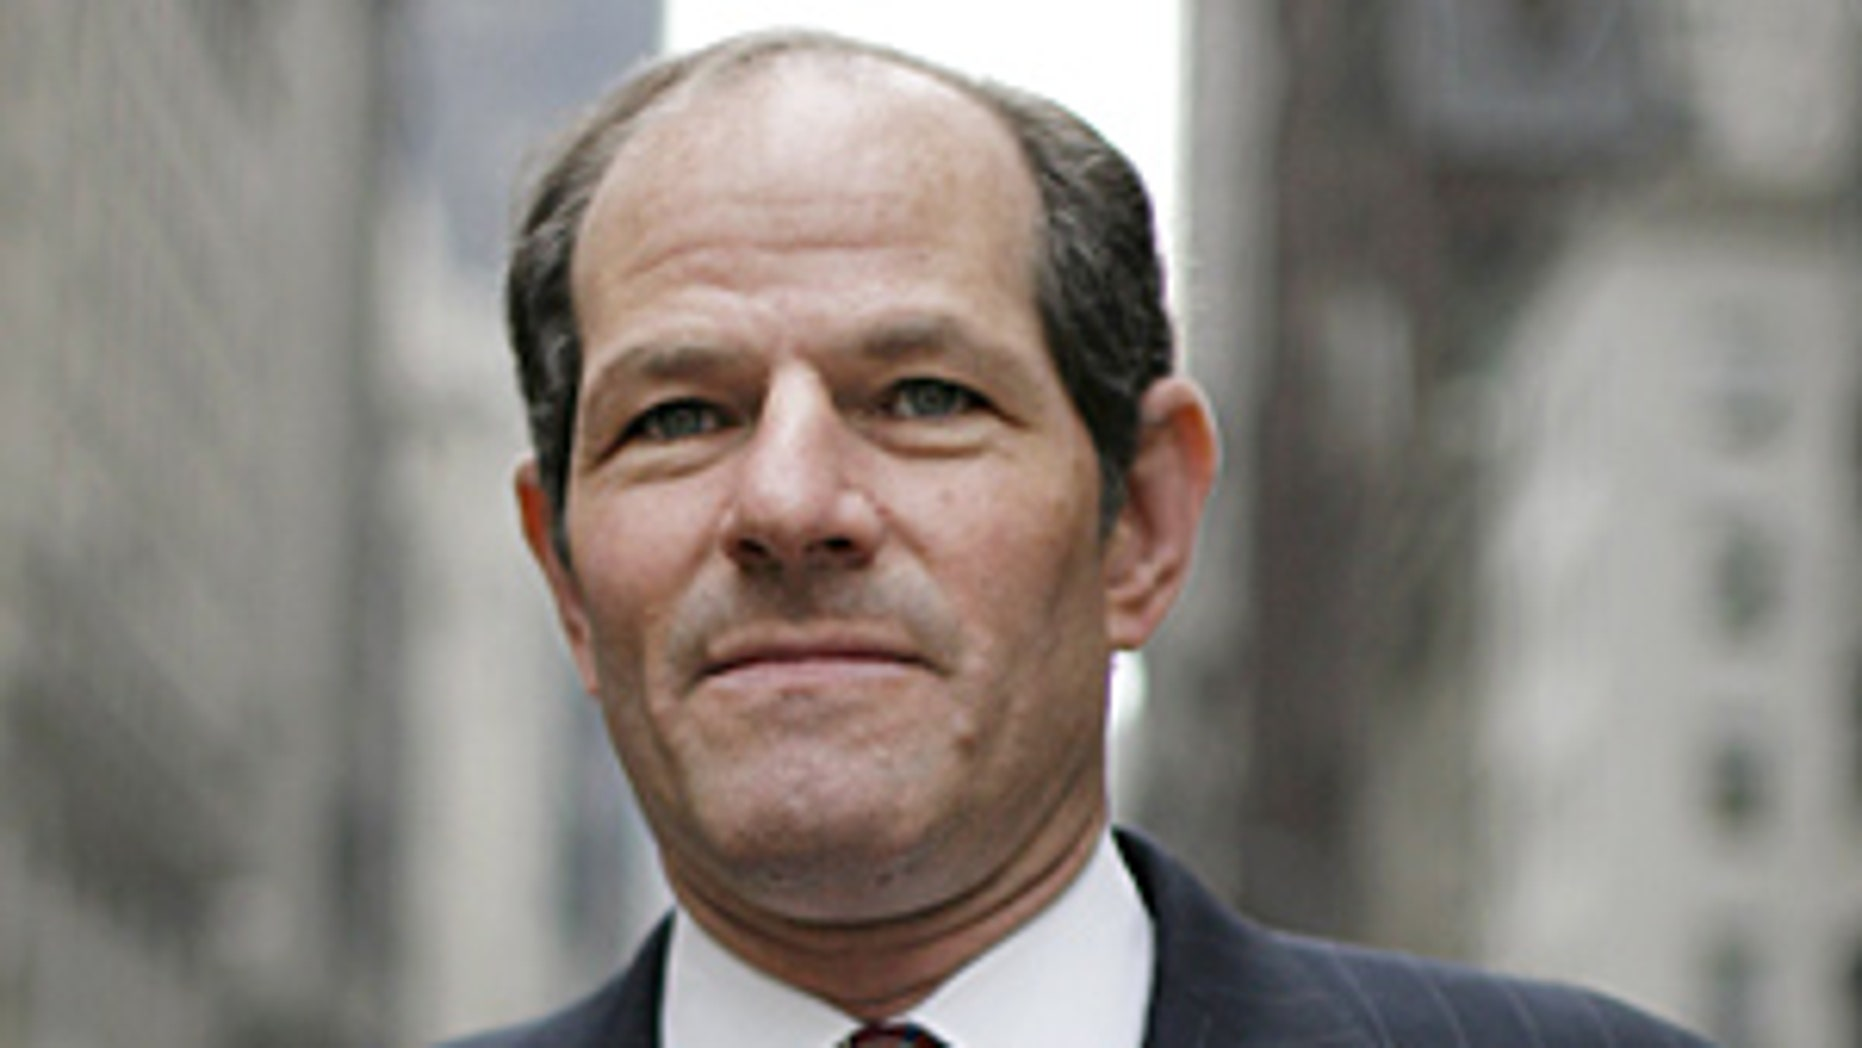 "NEW YORK - APRIL 7: ""EXCLUSIVE"" Former New York Governor and Attorney General Eliot Spitzer works at the family firm started by his father Bernard Spitzer on 5th Avenue and goes about his business on the streets of New York on April 10, 2009 in New York, NY.  On March 10, 2008, The New York Times reported that Spitzer was a client of a prostitution ring under investigation by the federal government. Two days later, he announced his resignation as governor of New York, effective March 17, citing ""private failings"".  (Photo by Charles Ommanney/Getty Images)"